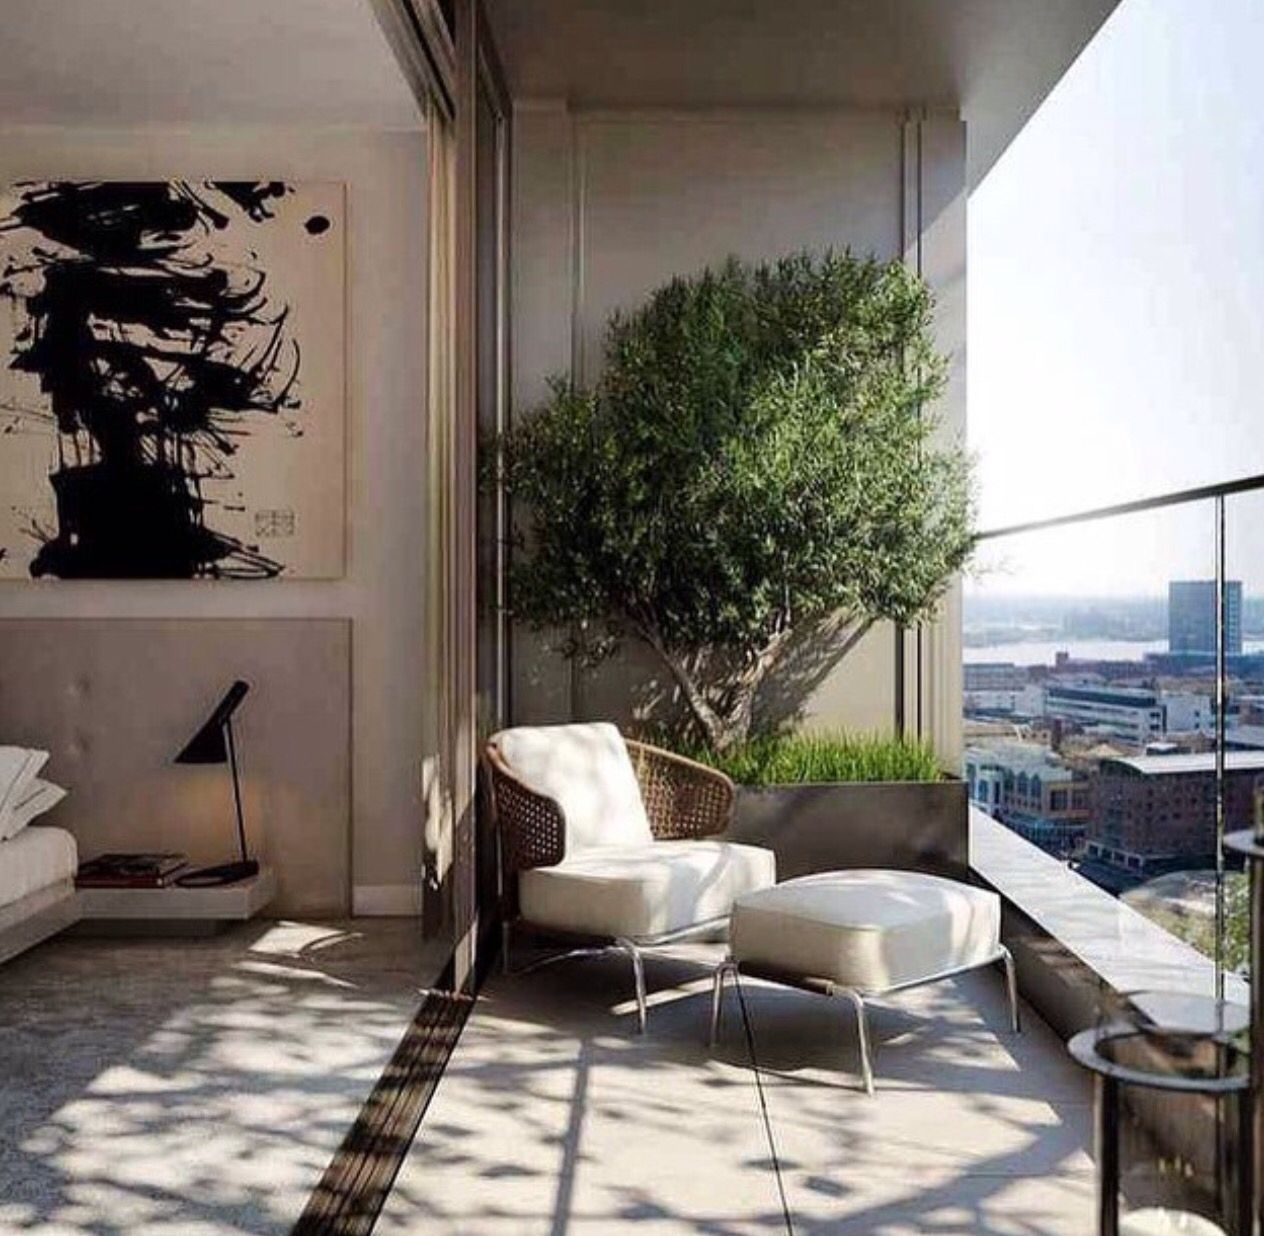 Urban garden planting trough w tree on city view for Balcony interior design